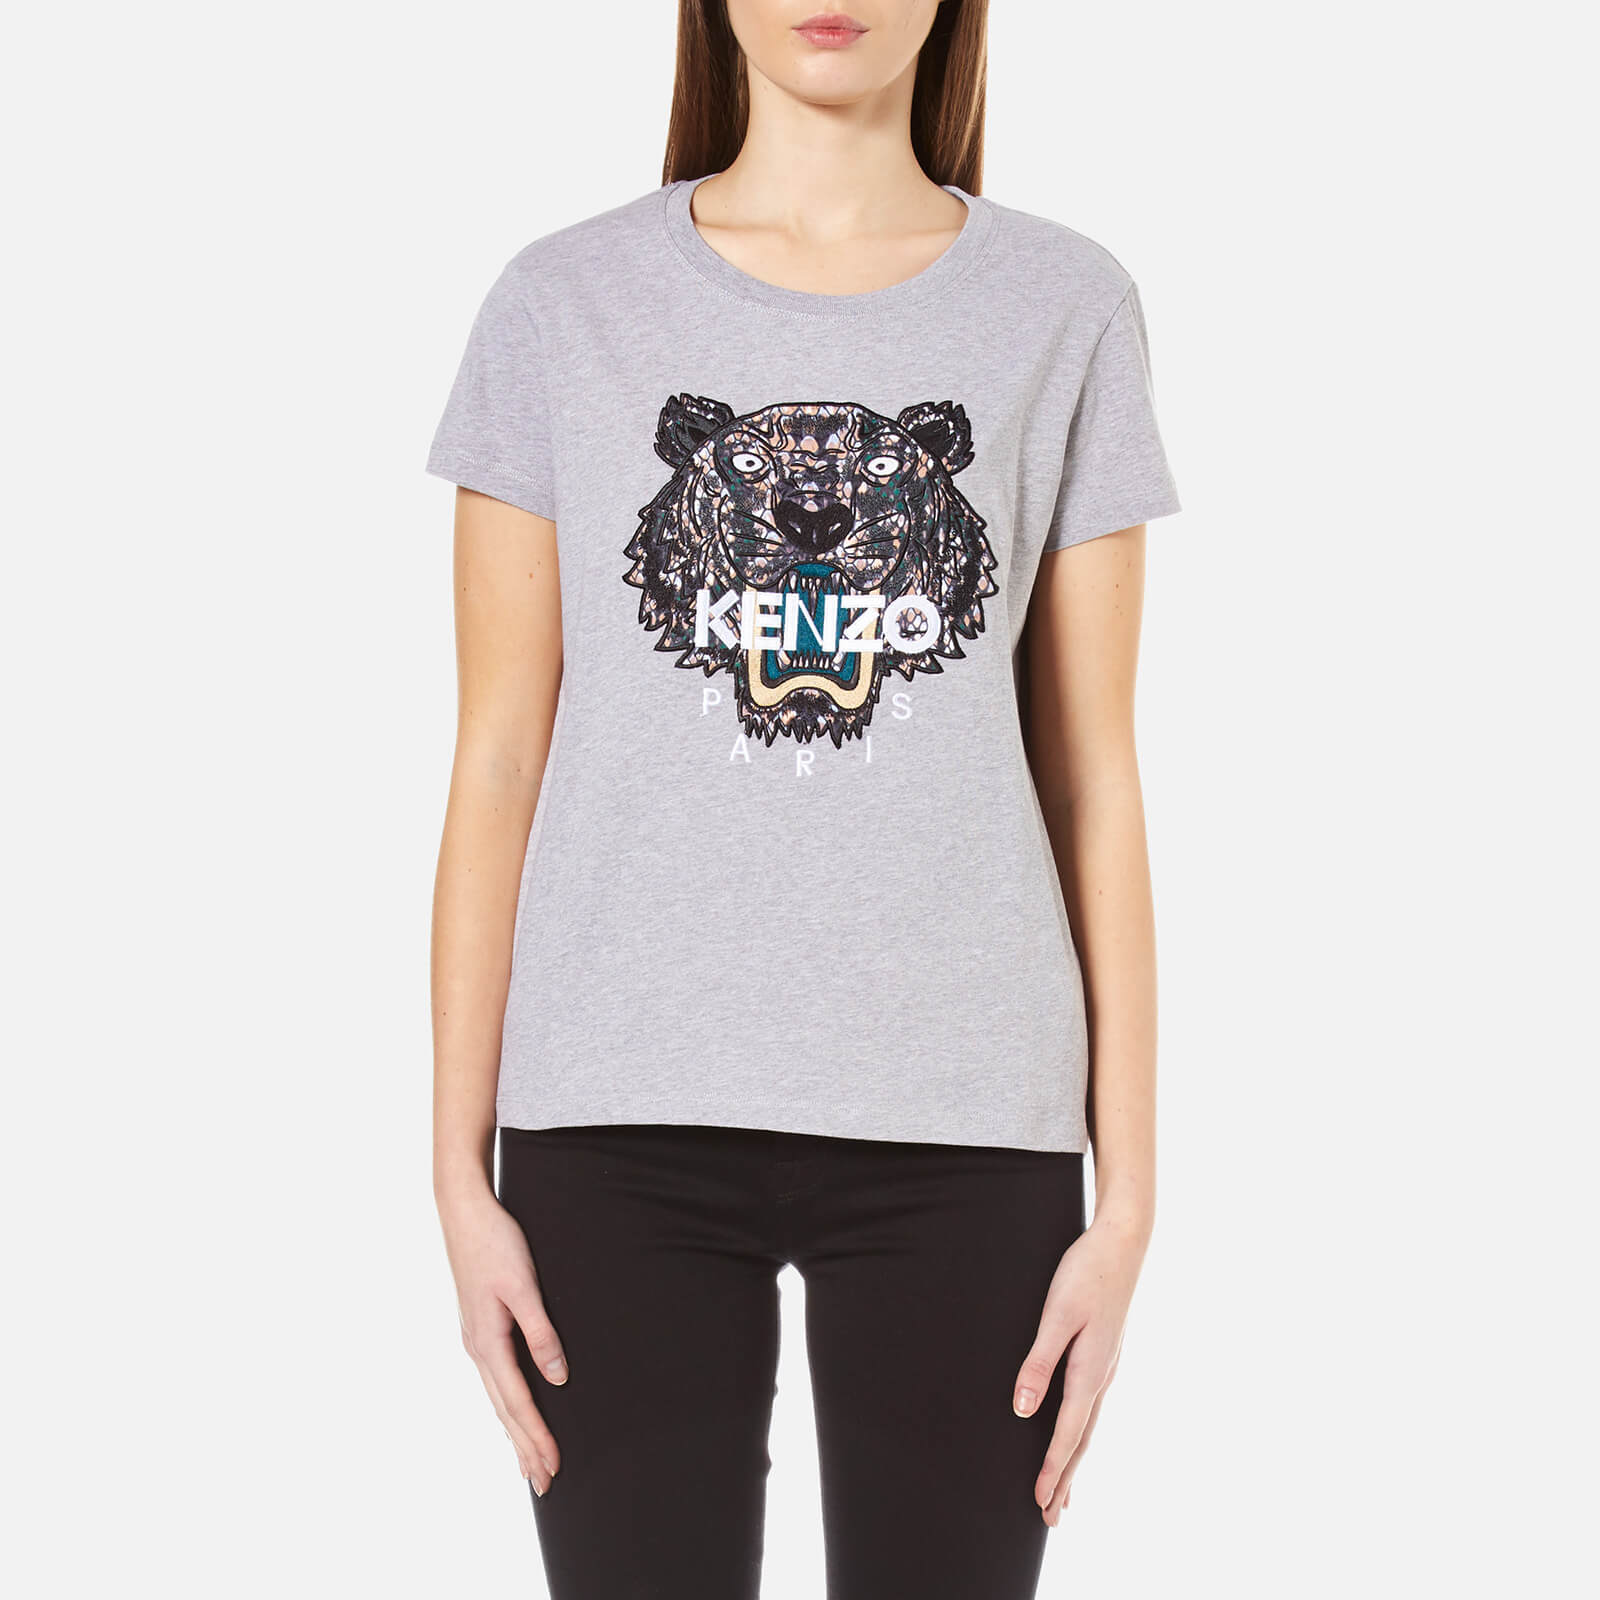 3dd9d0bac0ac KENZO Women's Snake X Tiger Embroidery T-Shirt - Grey - Free UK Delivery  over £50